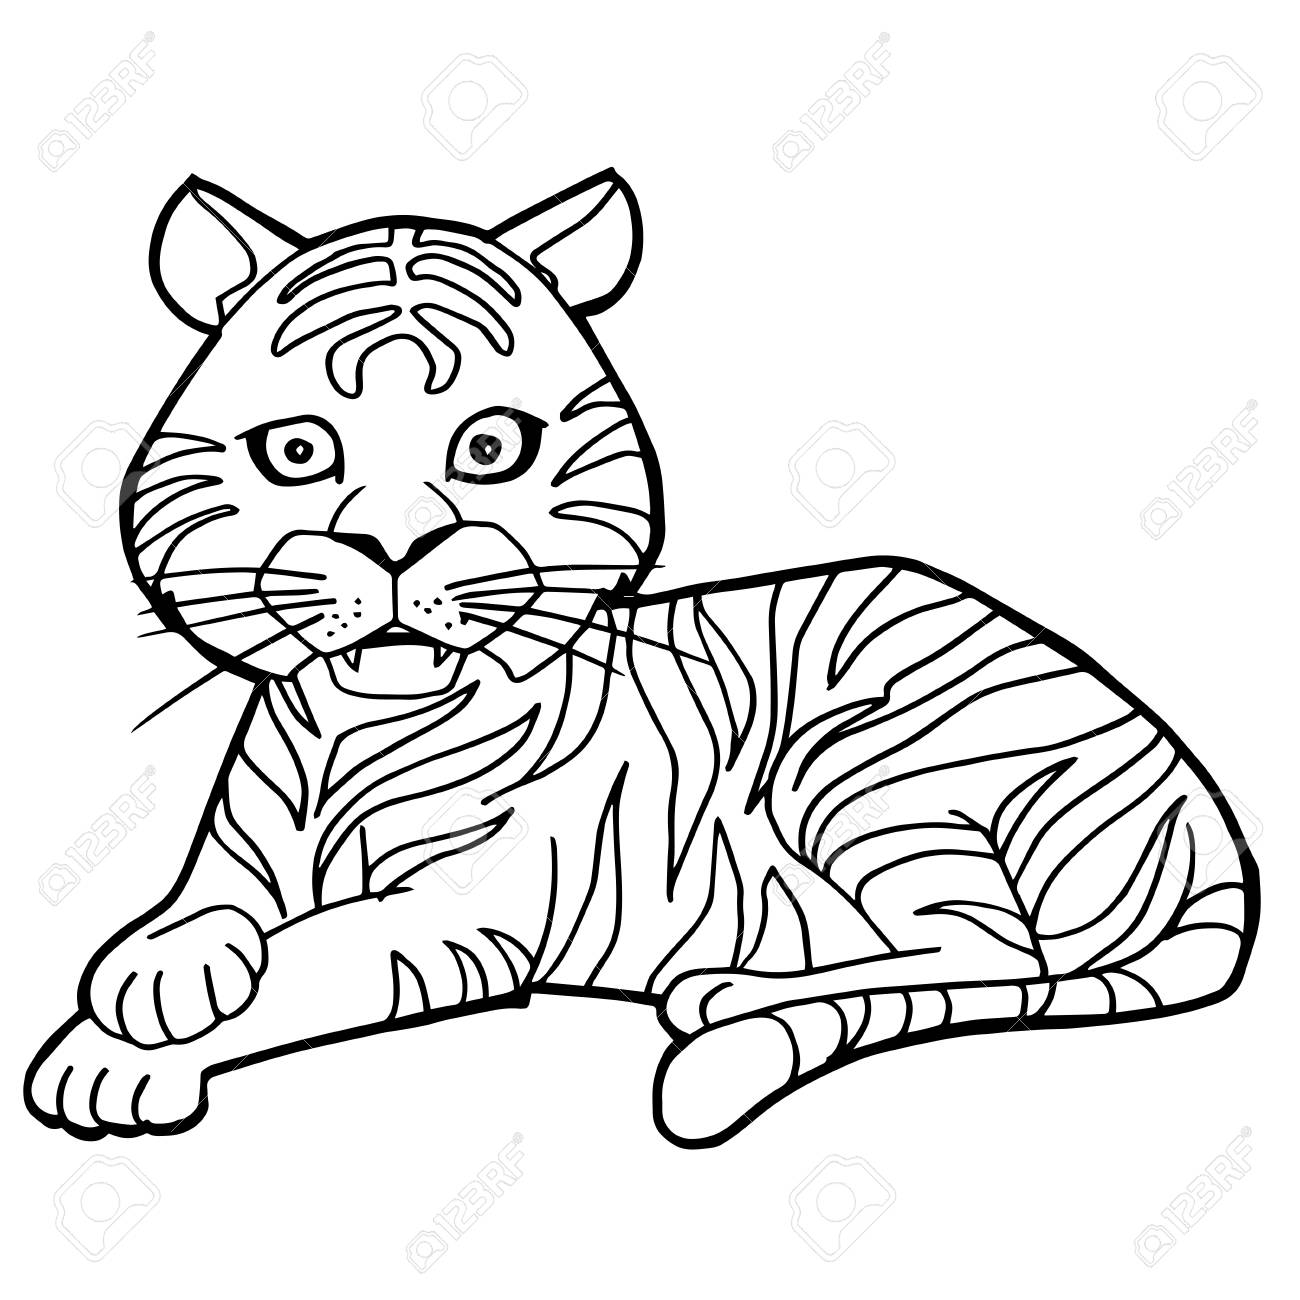 cartoon drawing of tiger at getdrawings com free for personal use